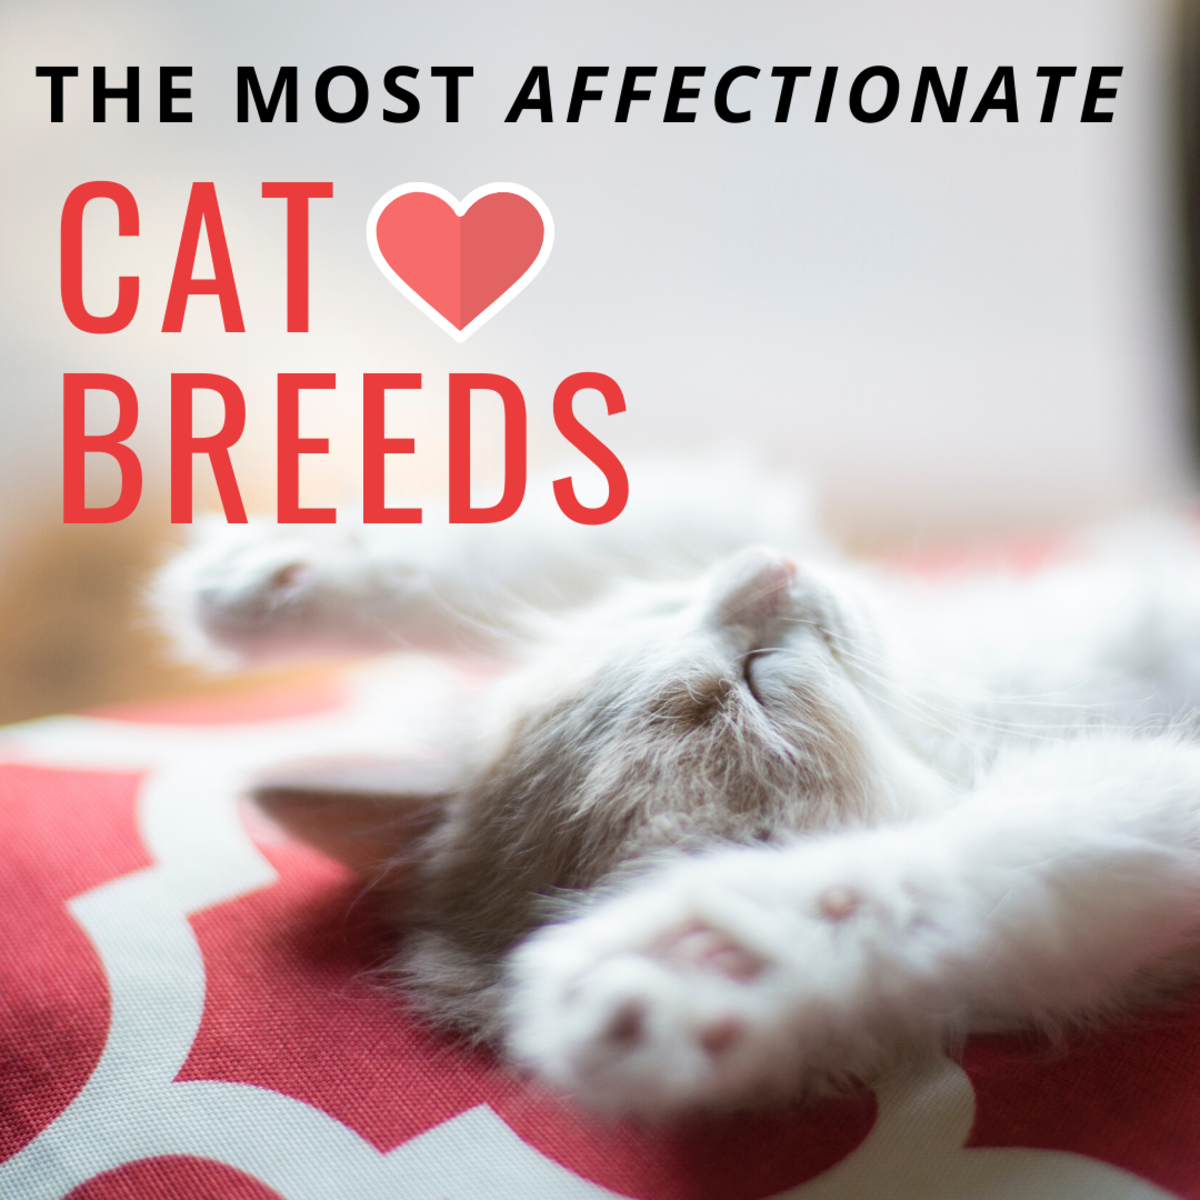 Top 10 Most Affectionate Cat Breeds